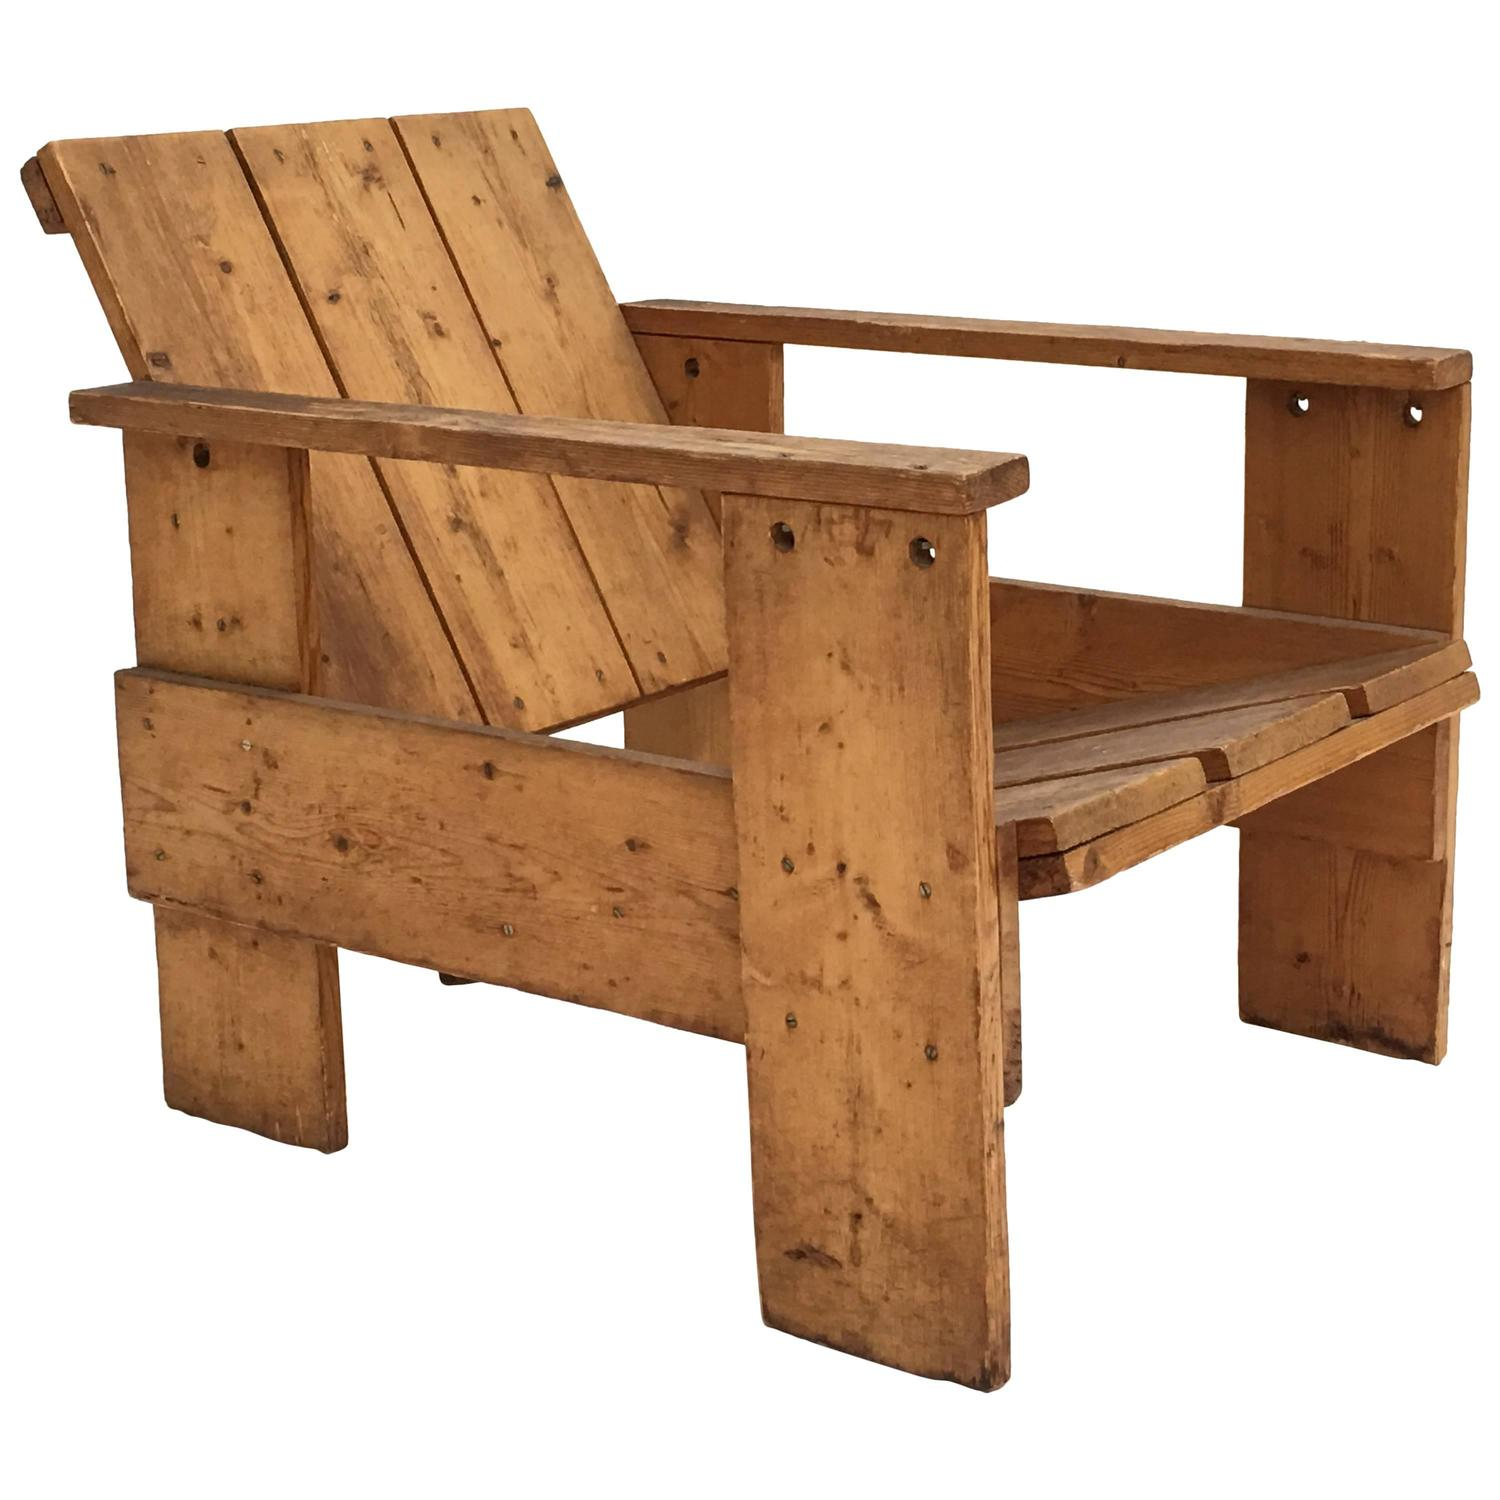 Furnitureinfashion Is Offering Very Affordable Arctic: 1950s Gerrit Rietveld Crate Chair By Unknown Manufacturer